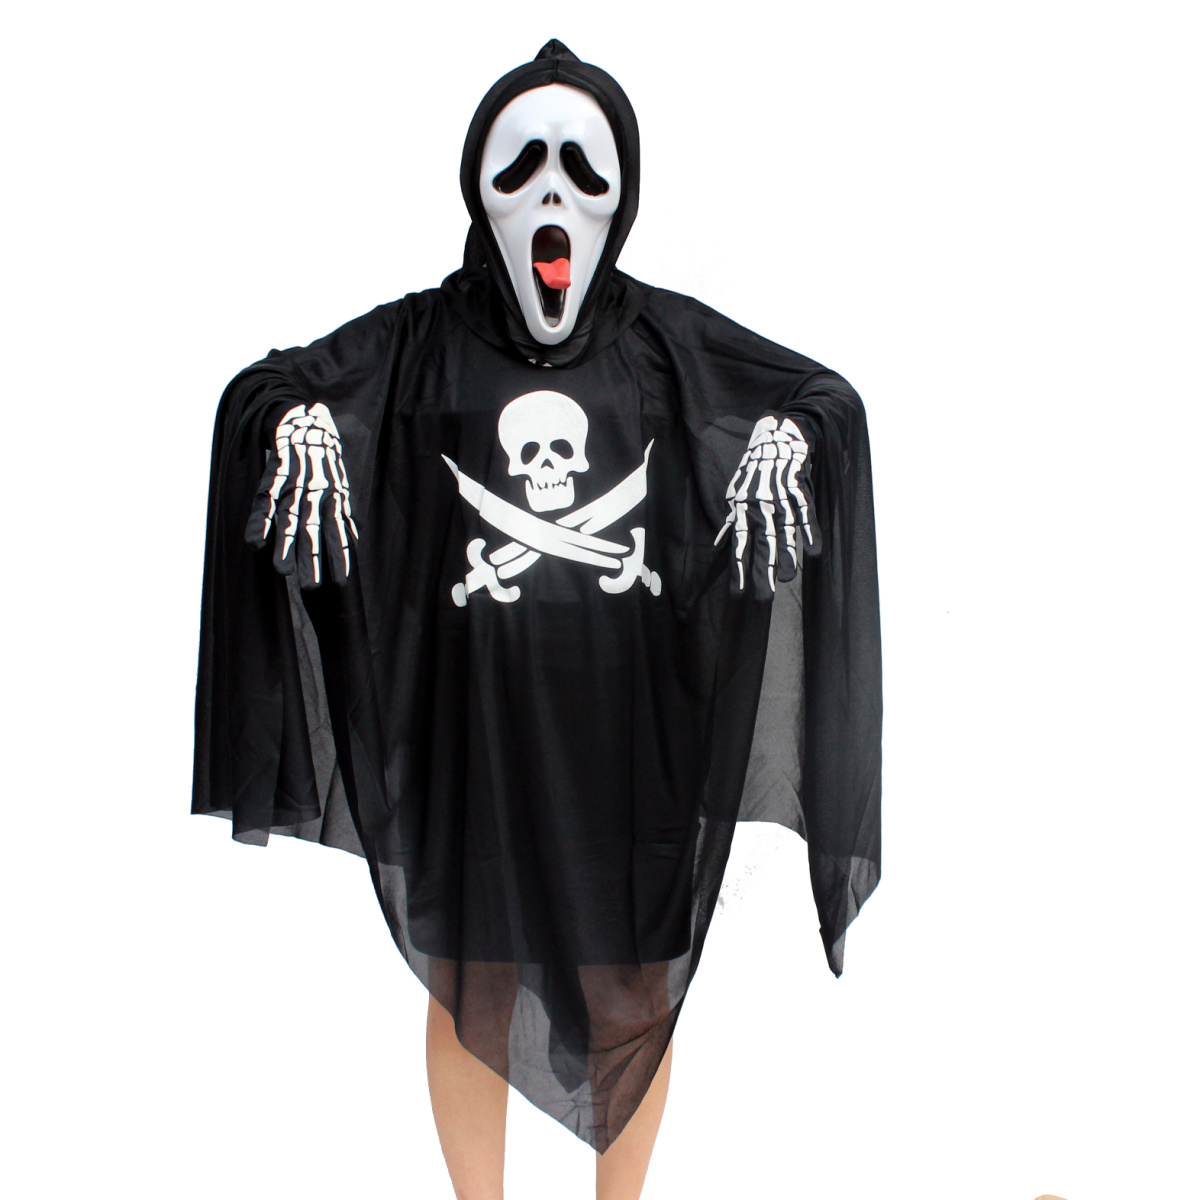 Buy Creepy square halloween costume costumes adult child ghost pirate clothing sickle ghost clothes the devil mask in Cheap Price on m.alibaba.com  sc 1 st  Alibaba & Buy Creepy square halloween costume costumes adult child ghost ...